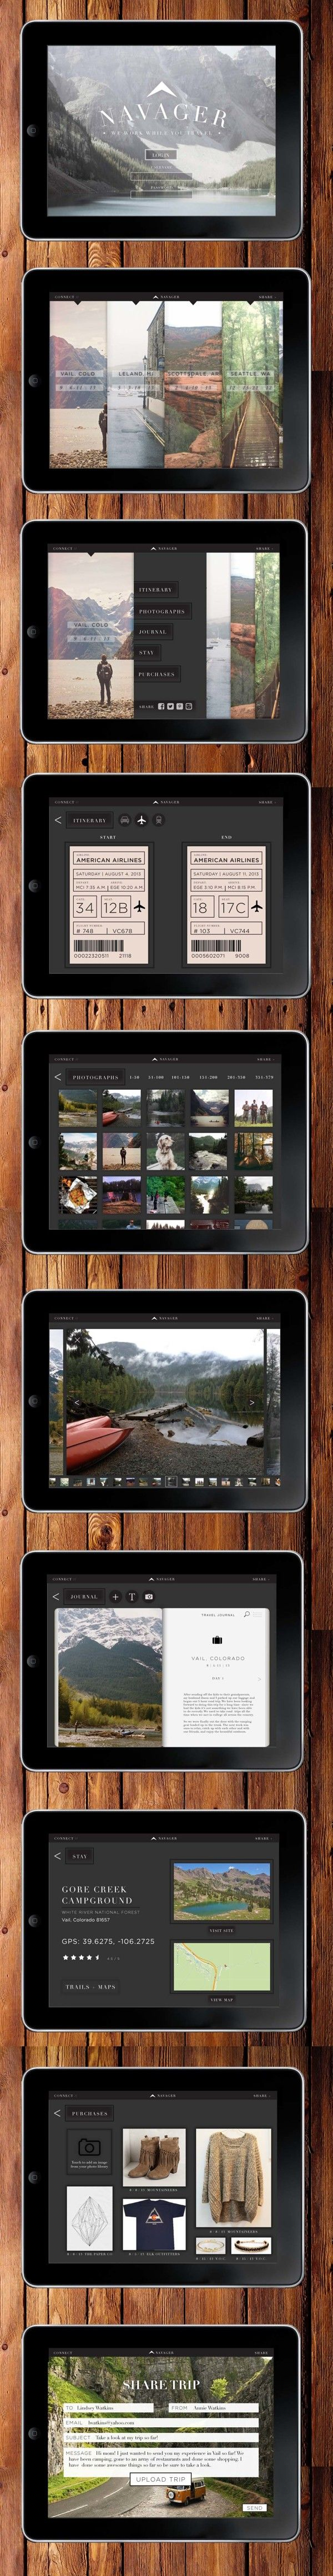 N A V A G E R travel app | Designer: Alex Milbourn - on App Design Served #ipadapp #journal